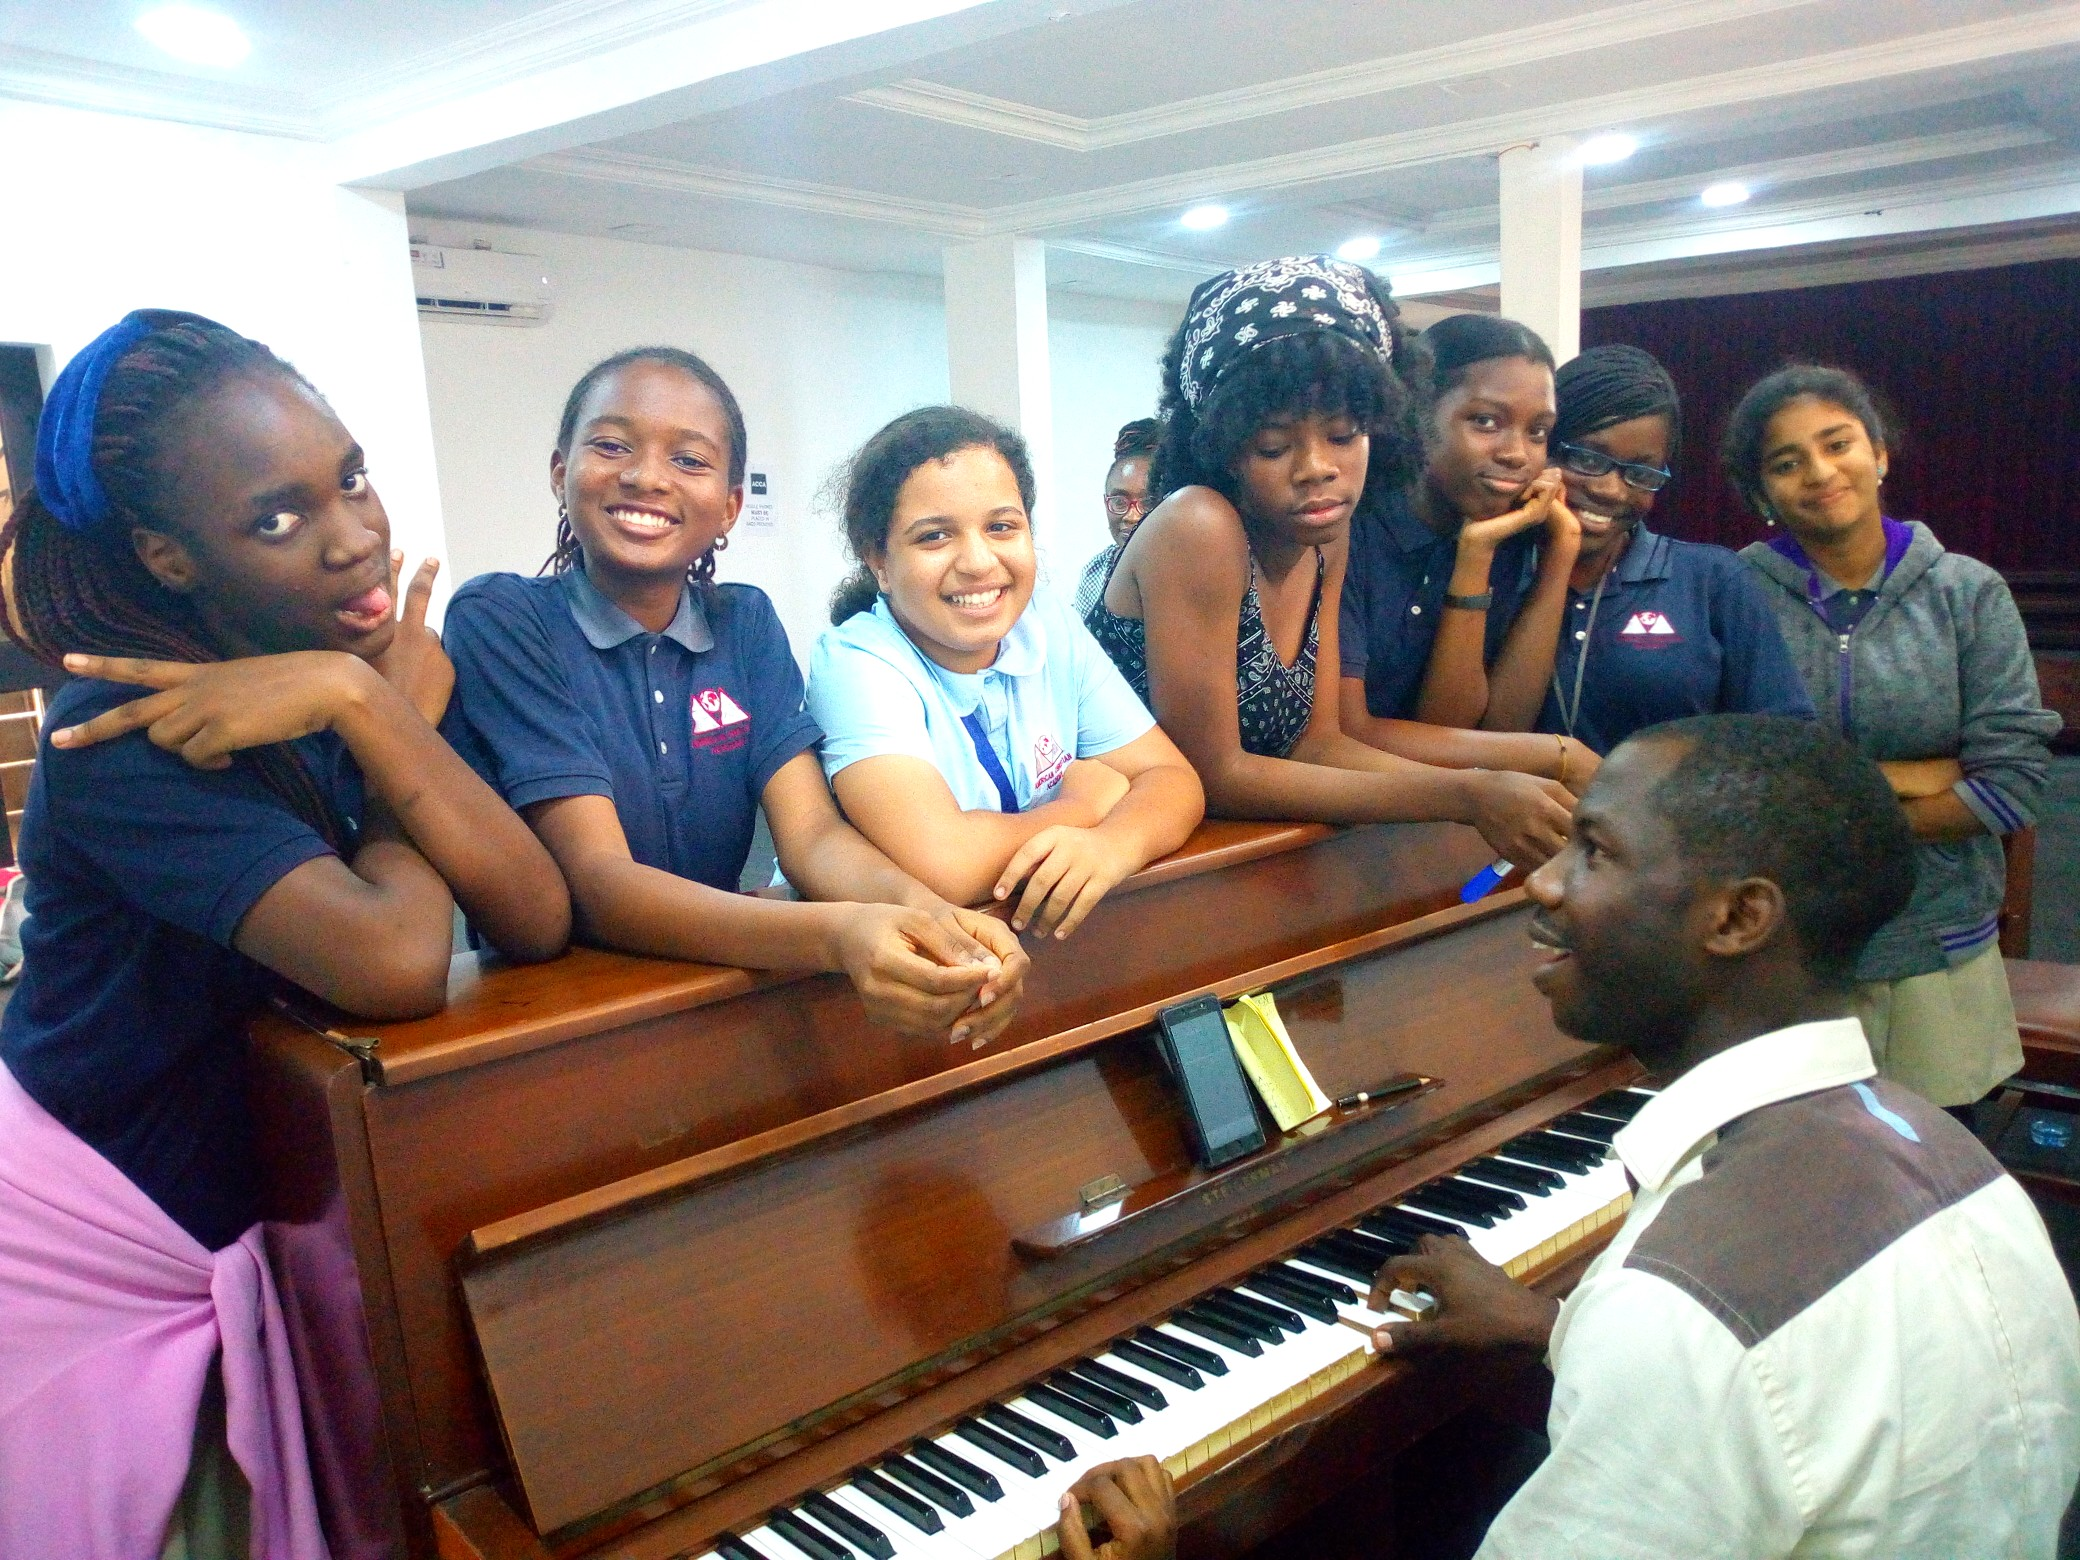 Vocal Performance Club preparing for their performance at Bethel American International School.